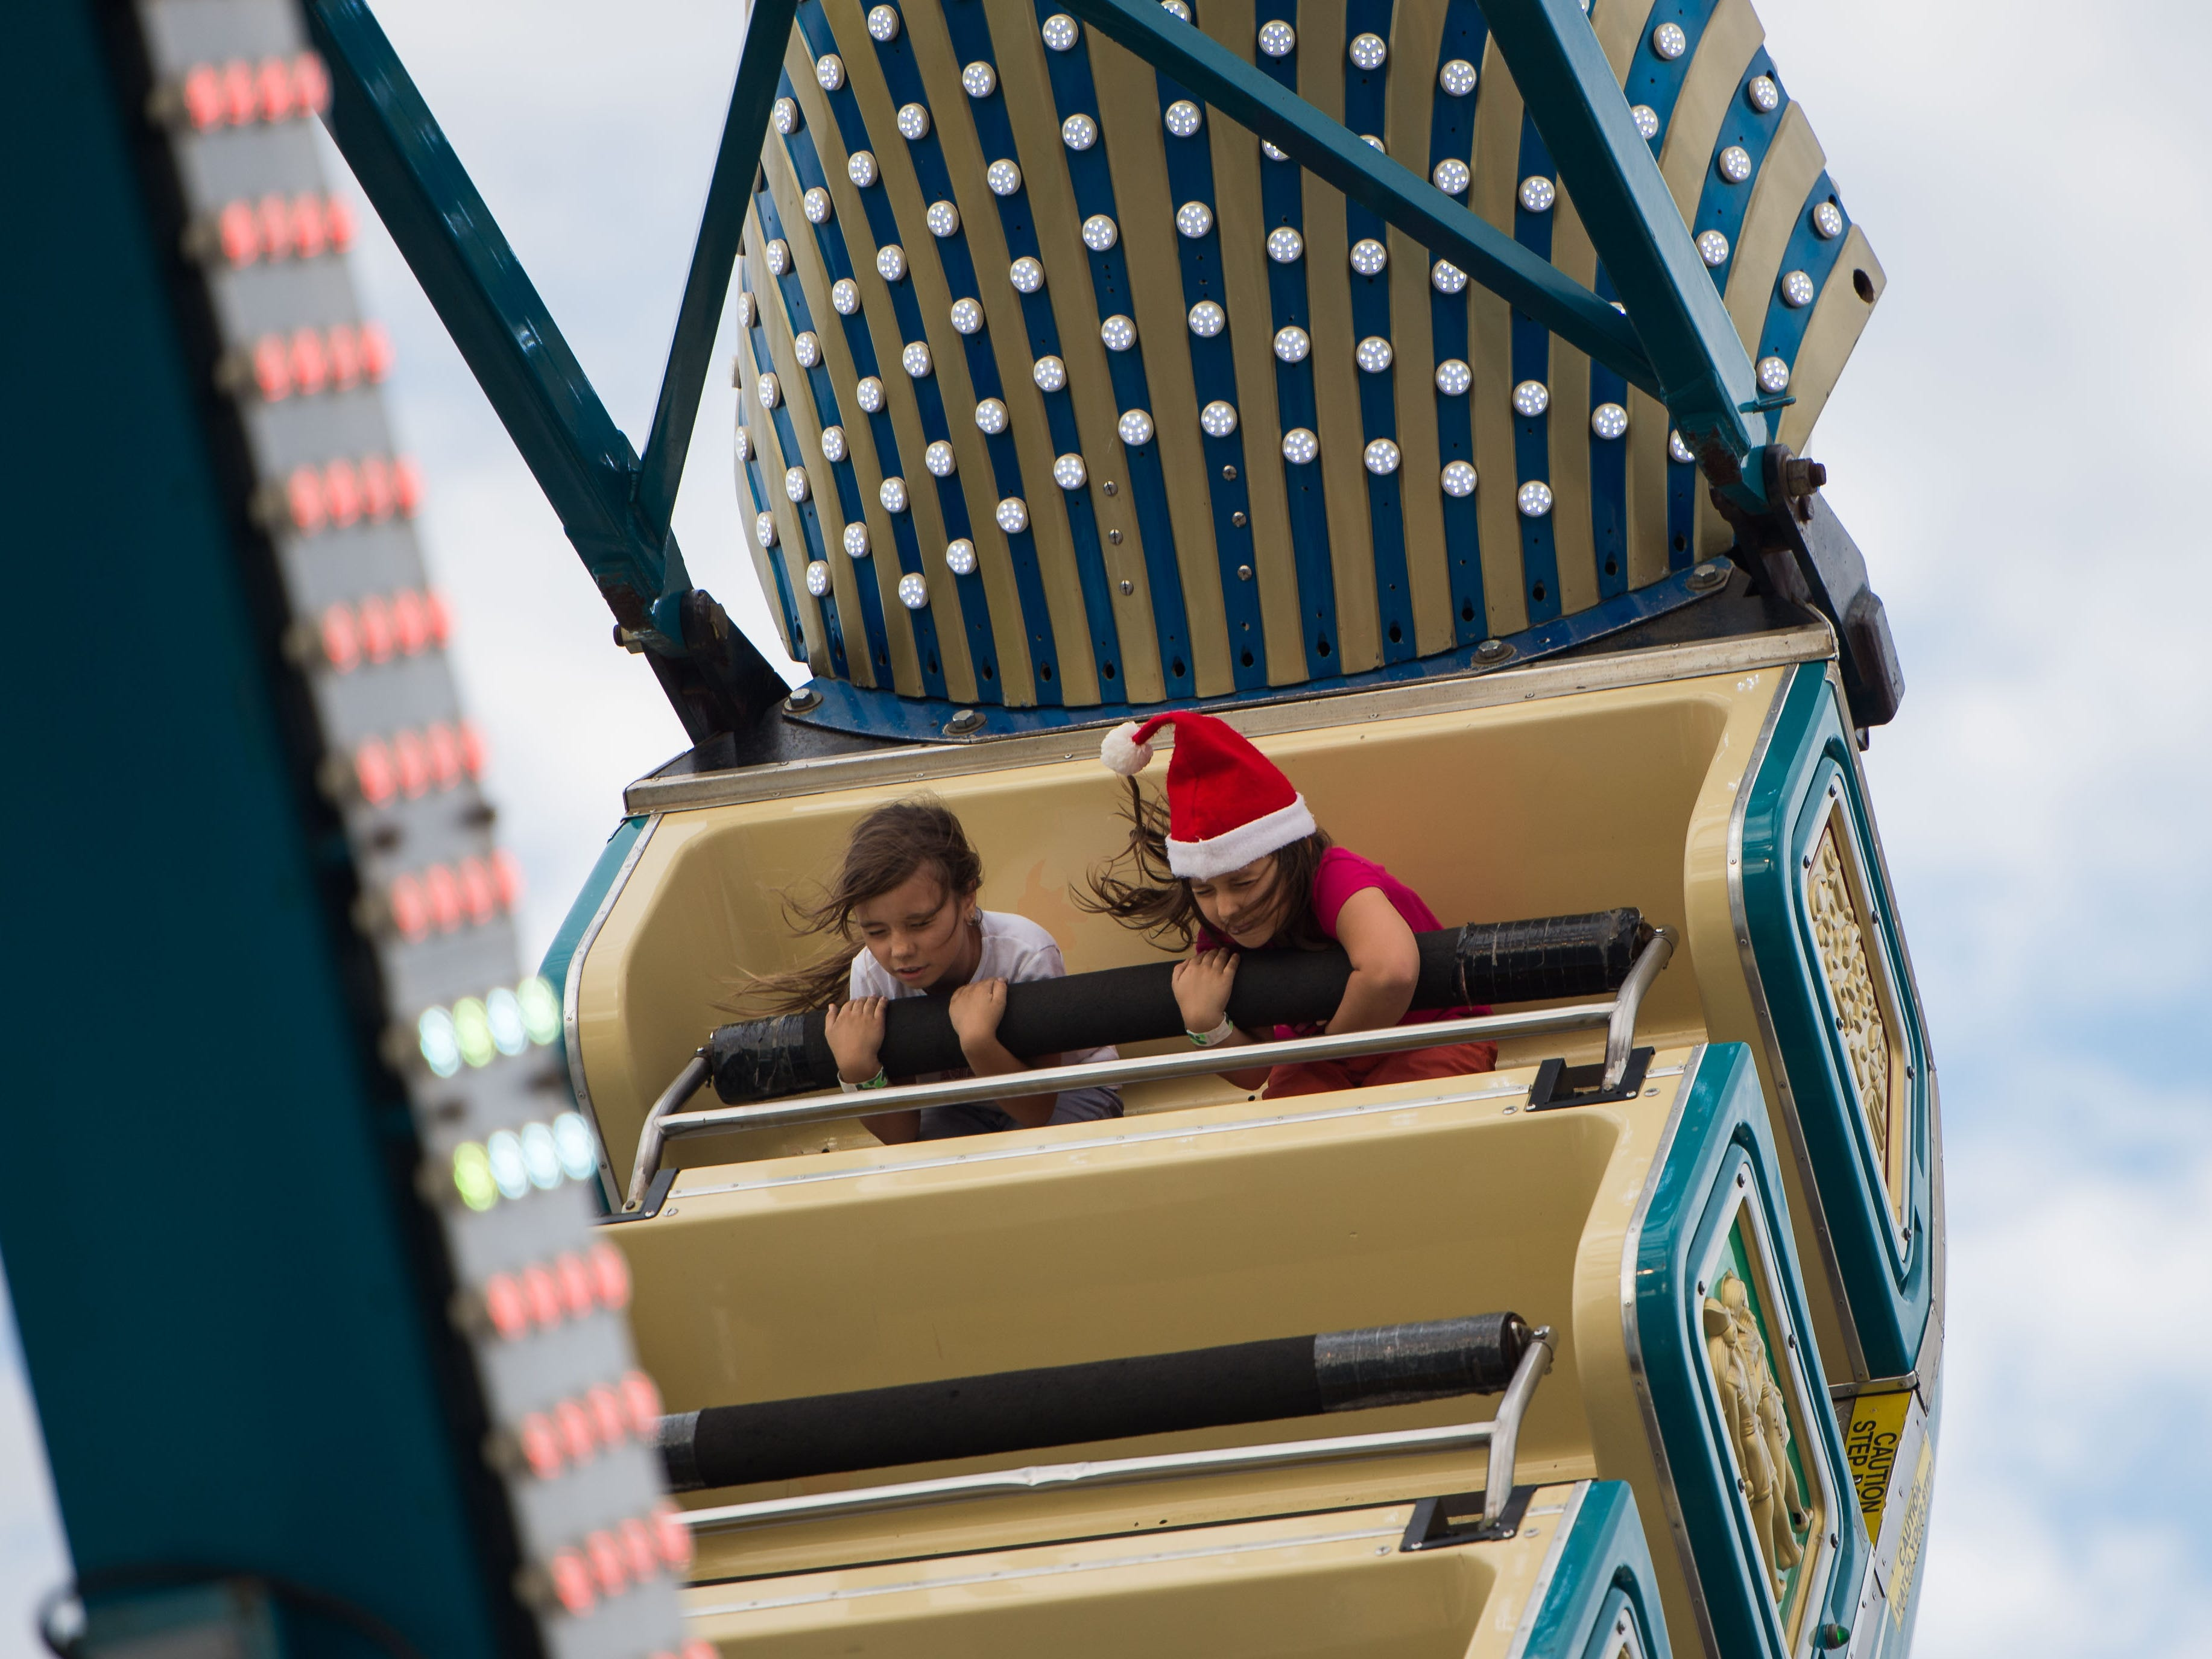 Lexi Mello (right), 7, of Port St. Lucie, shuts her eyes while she and her sister, Kassidy Mello, 9, ride the Pharaoh's Fury at the Port St. Lucie Festival of Lights at the Port St. Lucie Civic Center on Saturday, Dec. 1, 2018, in Port St. Lucie. In addition to rides, food, holiday shopping and live music, the event featured the Snowflakes & Snowmen parade and tree lighting.